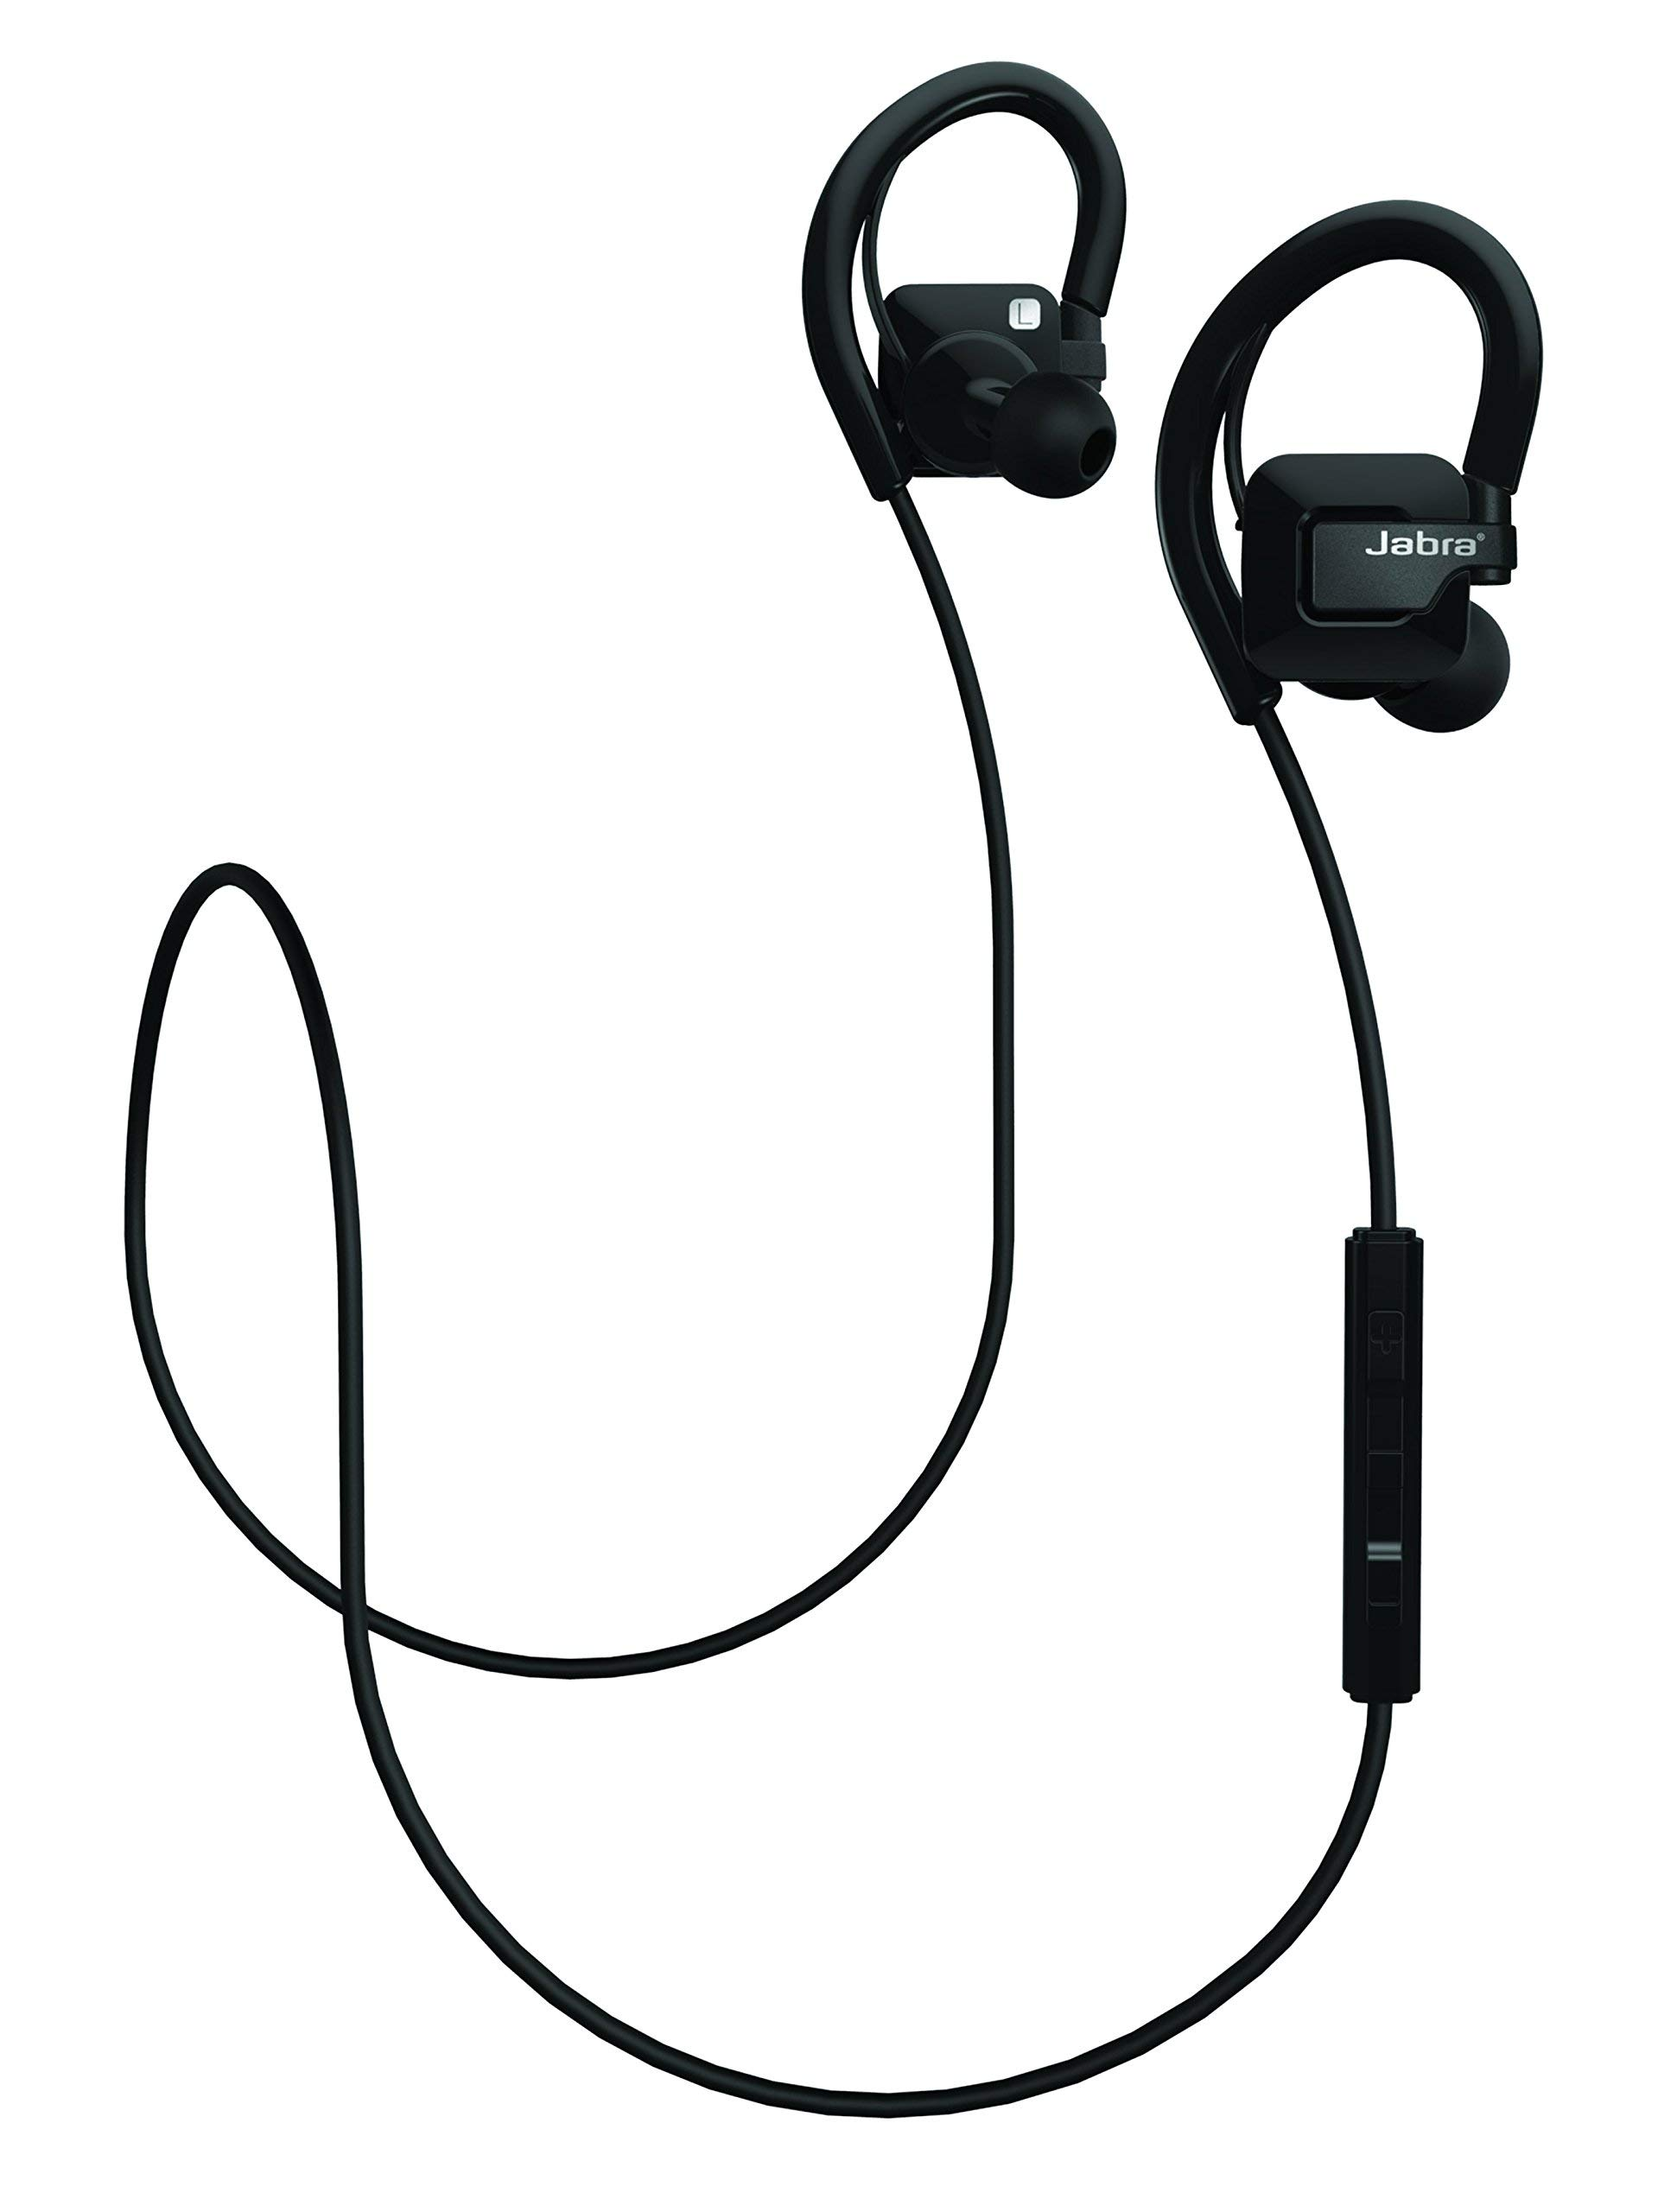 Jabra Step Wireless Bluetooth Stereo Earbuds 100-97000000-02 (Renewed)